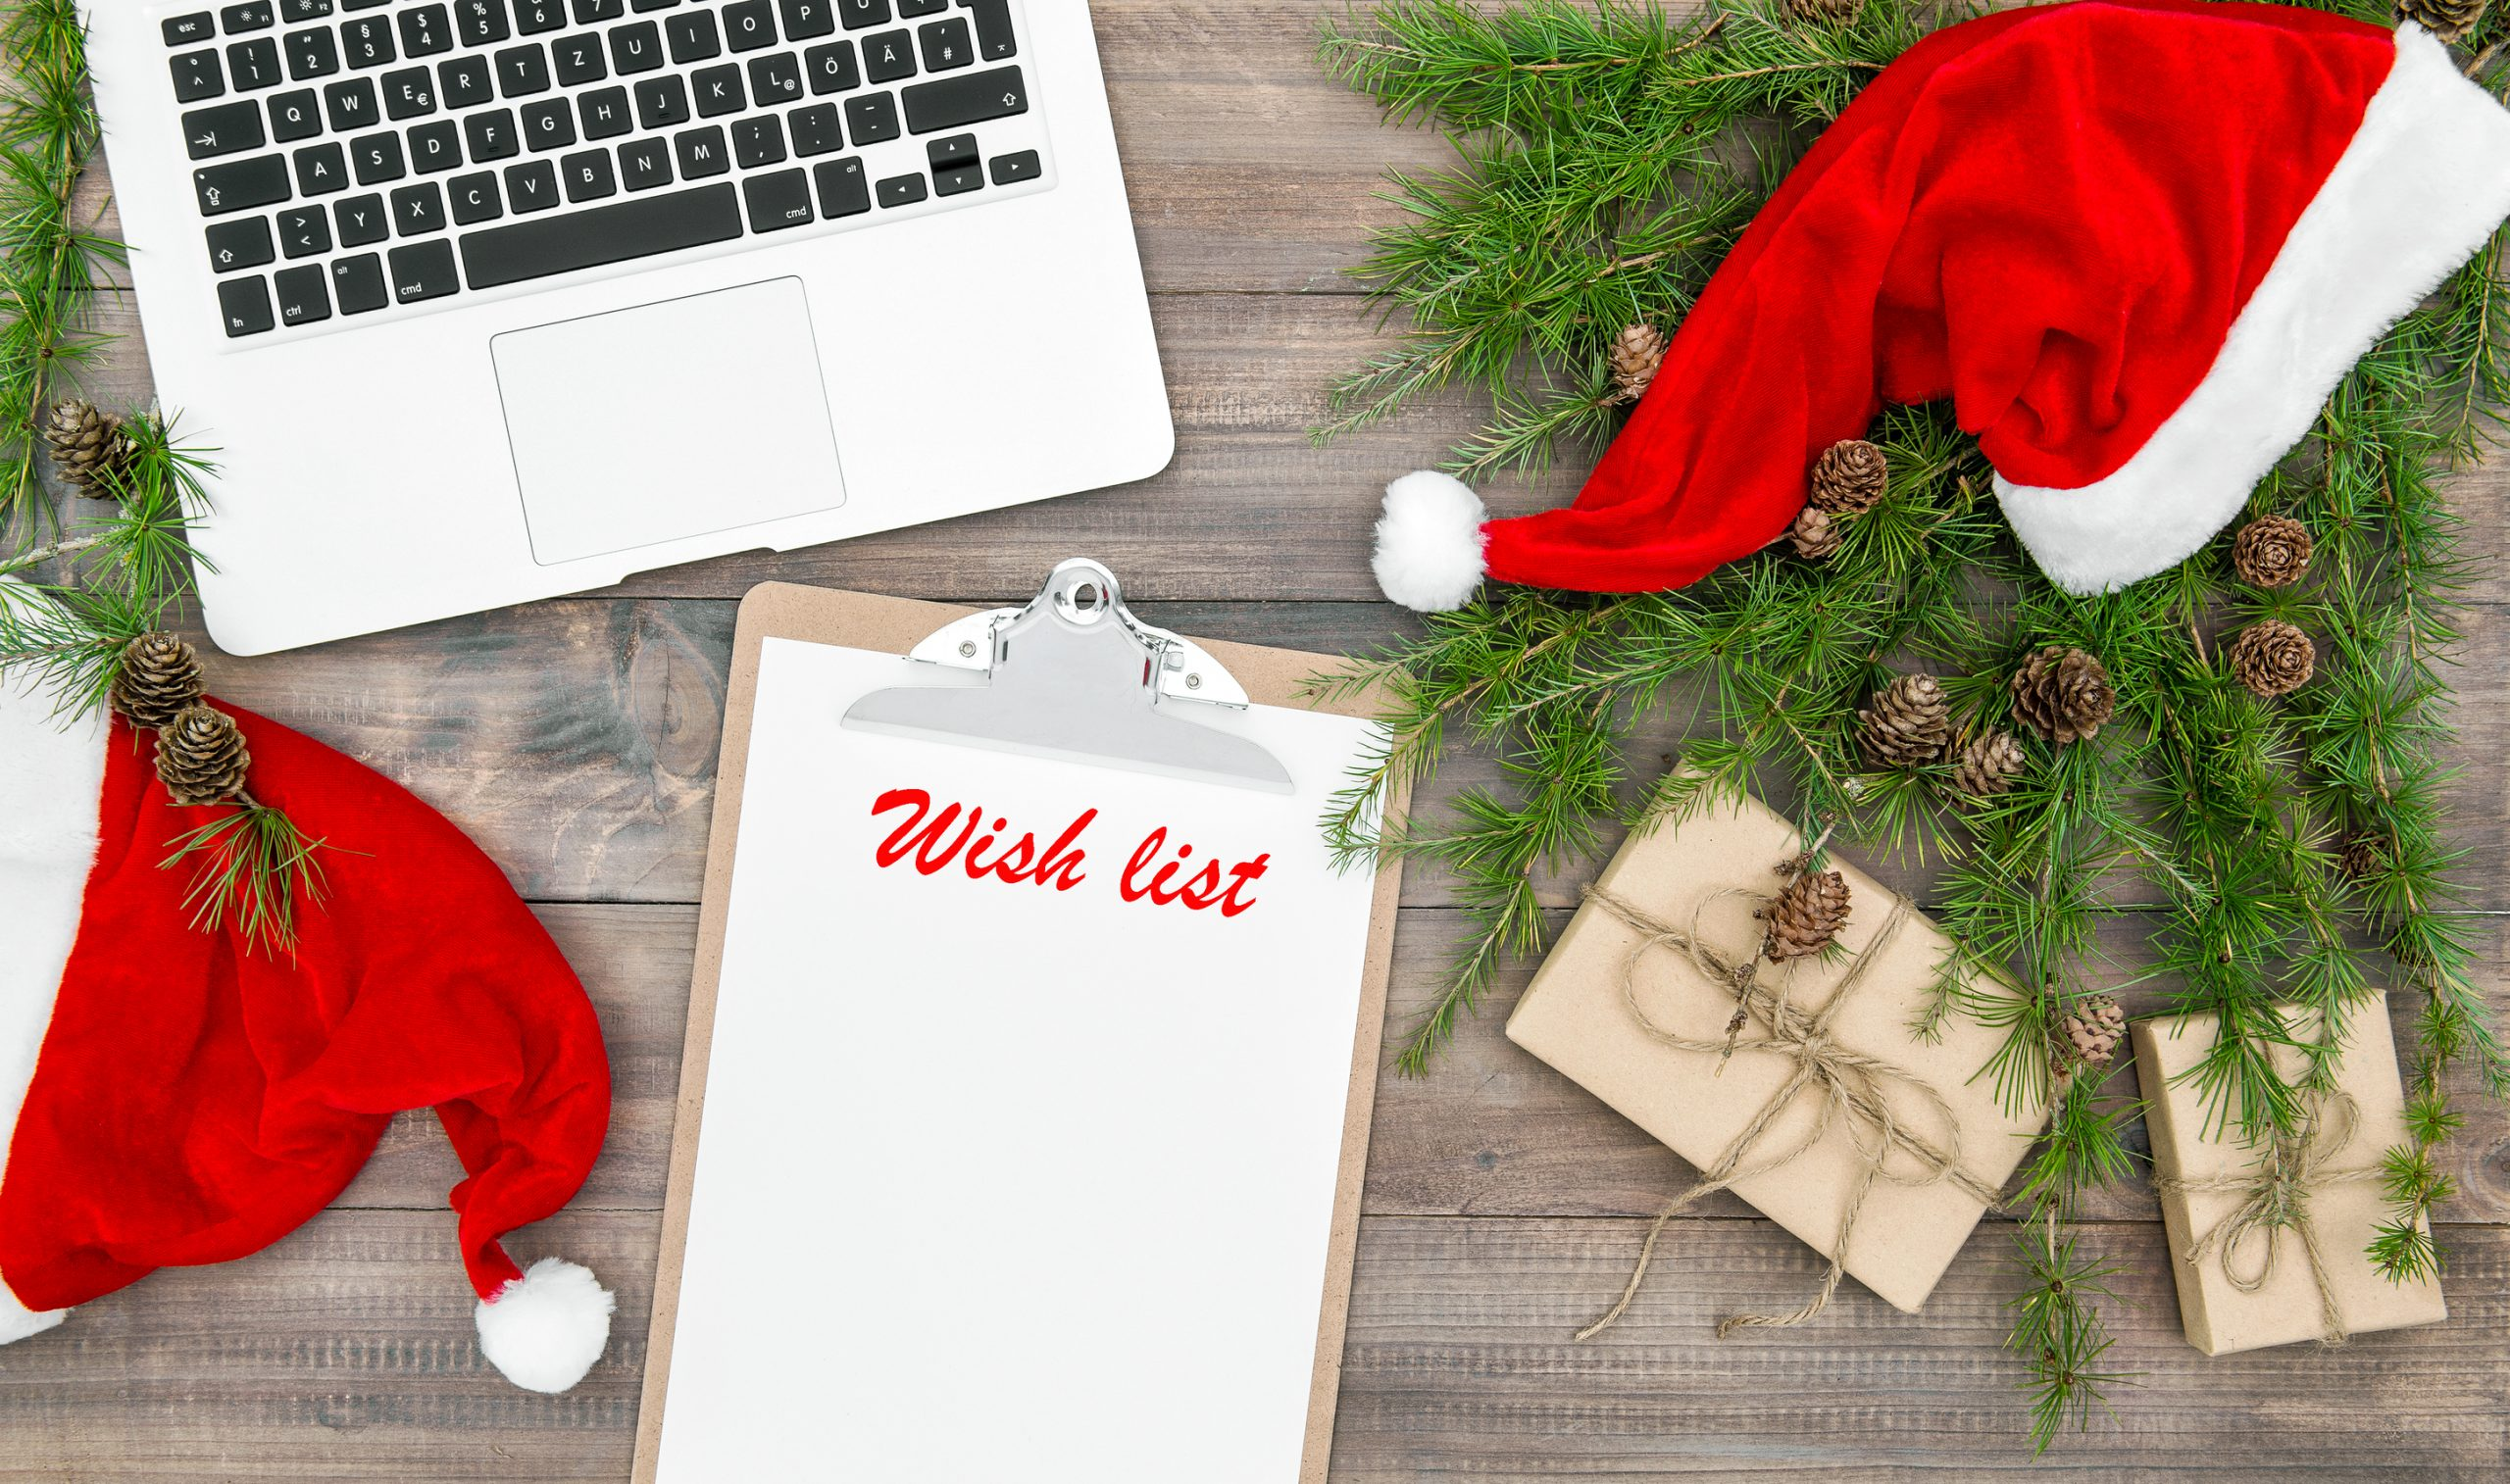 Holiday Gift Guide for Working Remotely and Learning from Home